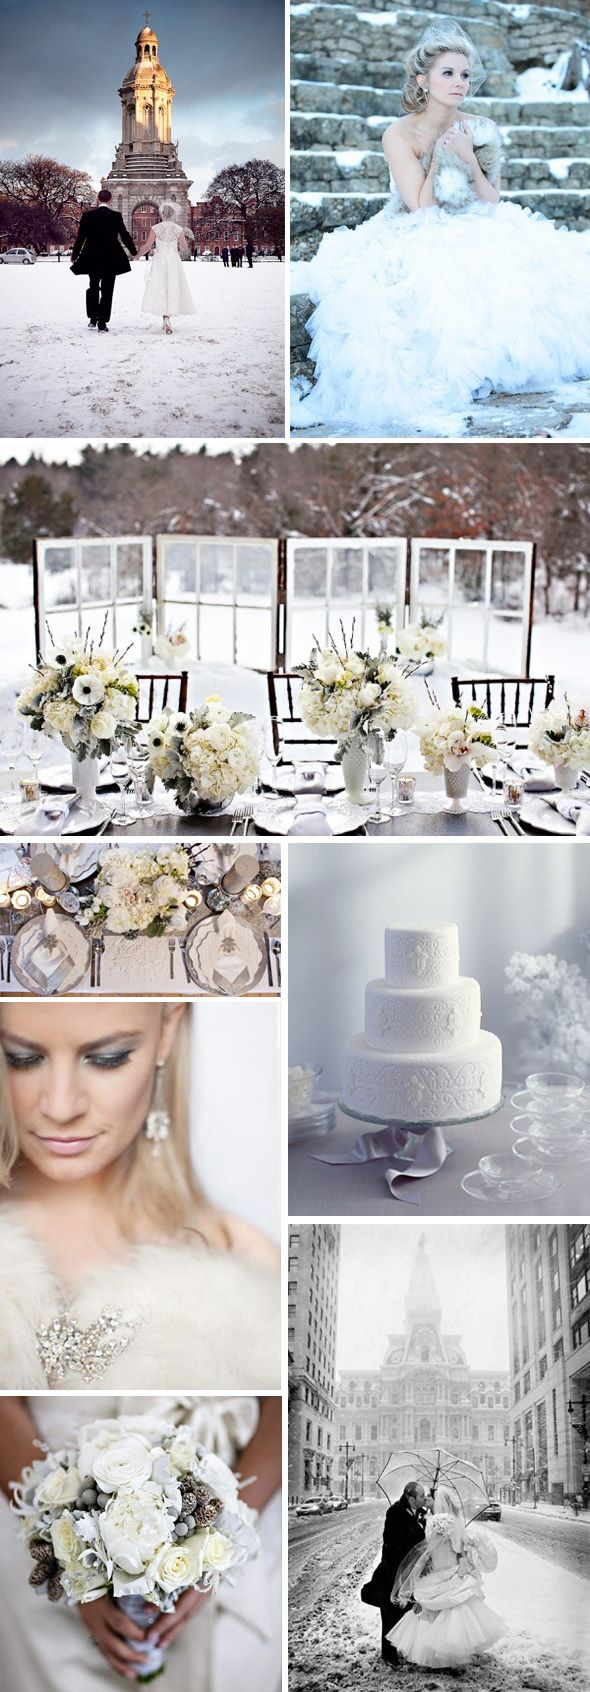 #Winter #Weddings